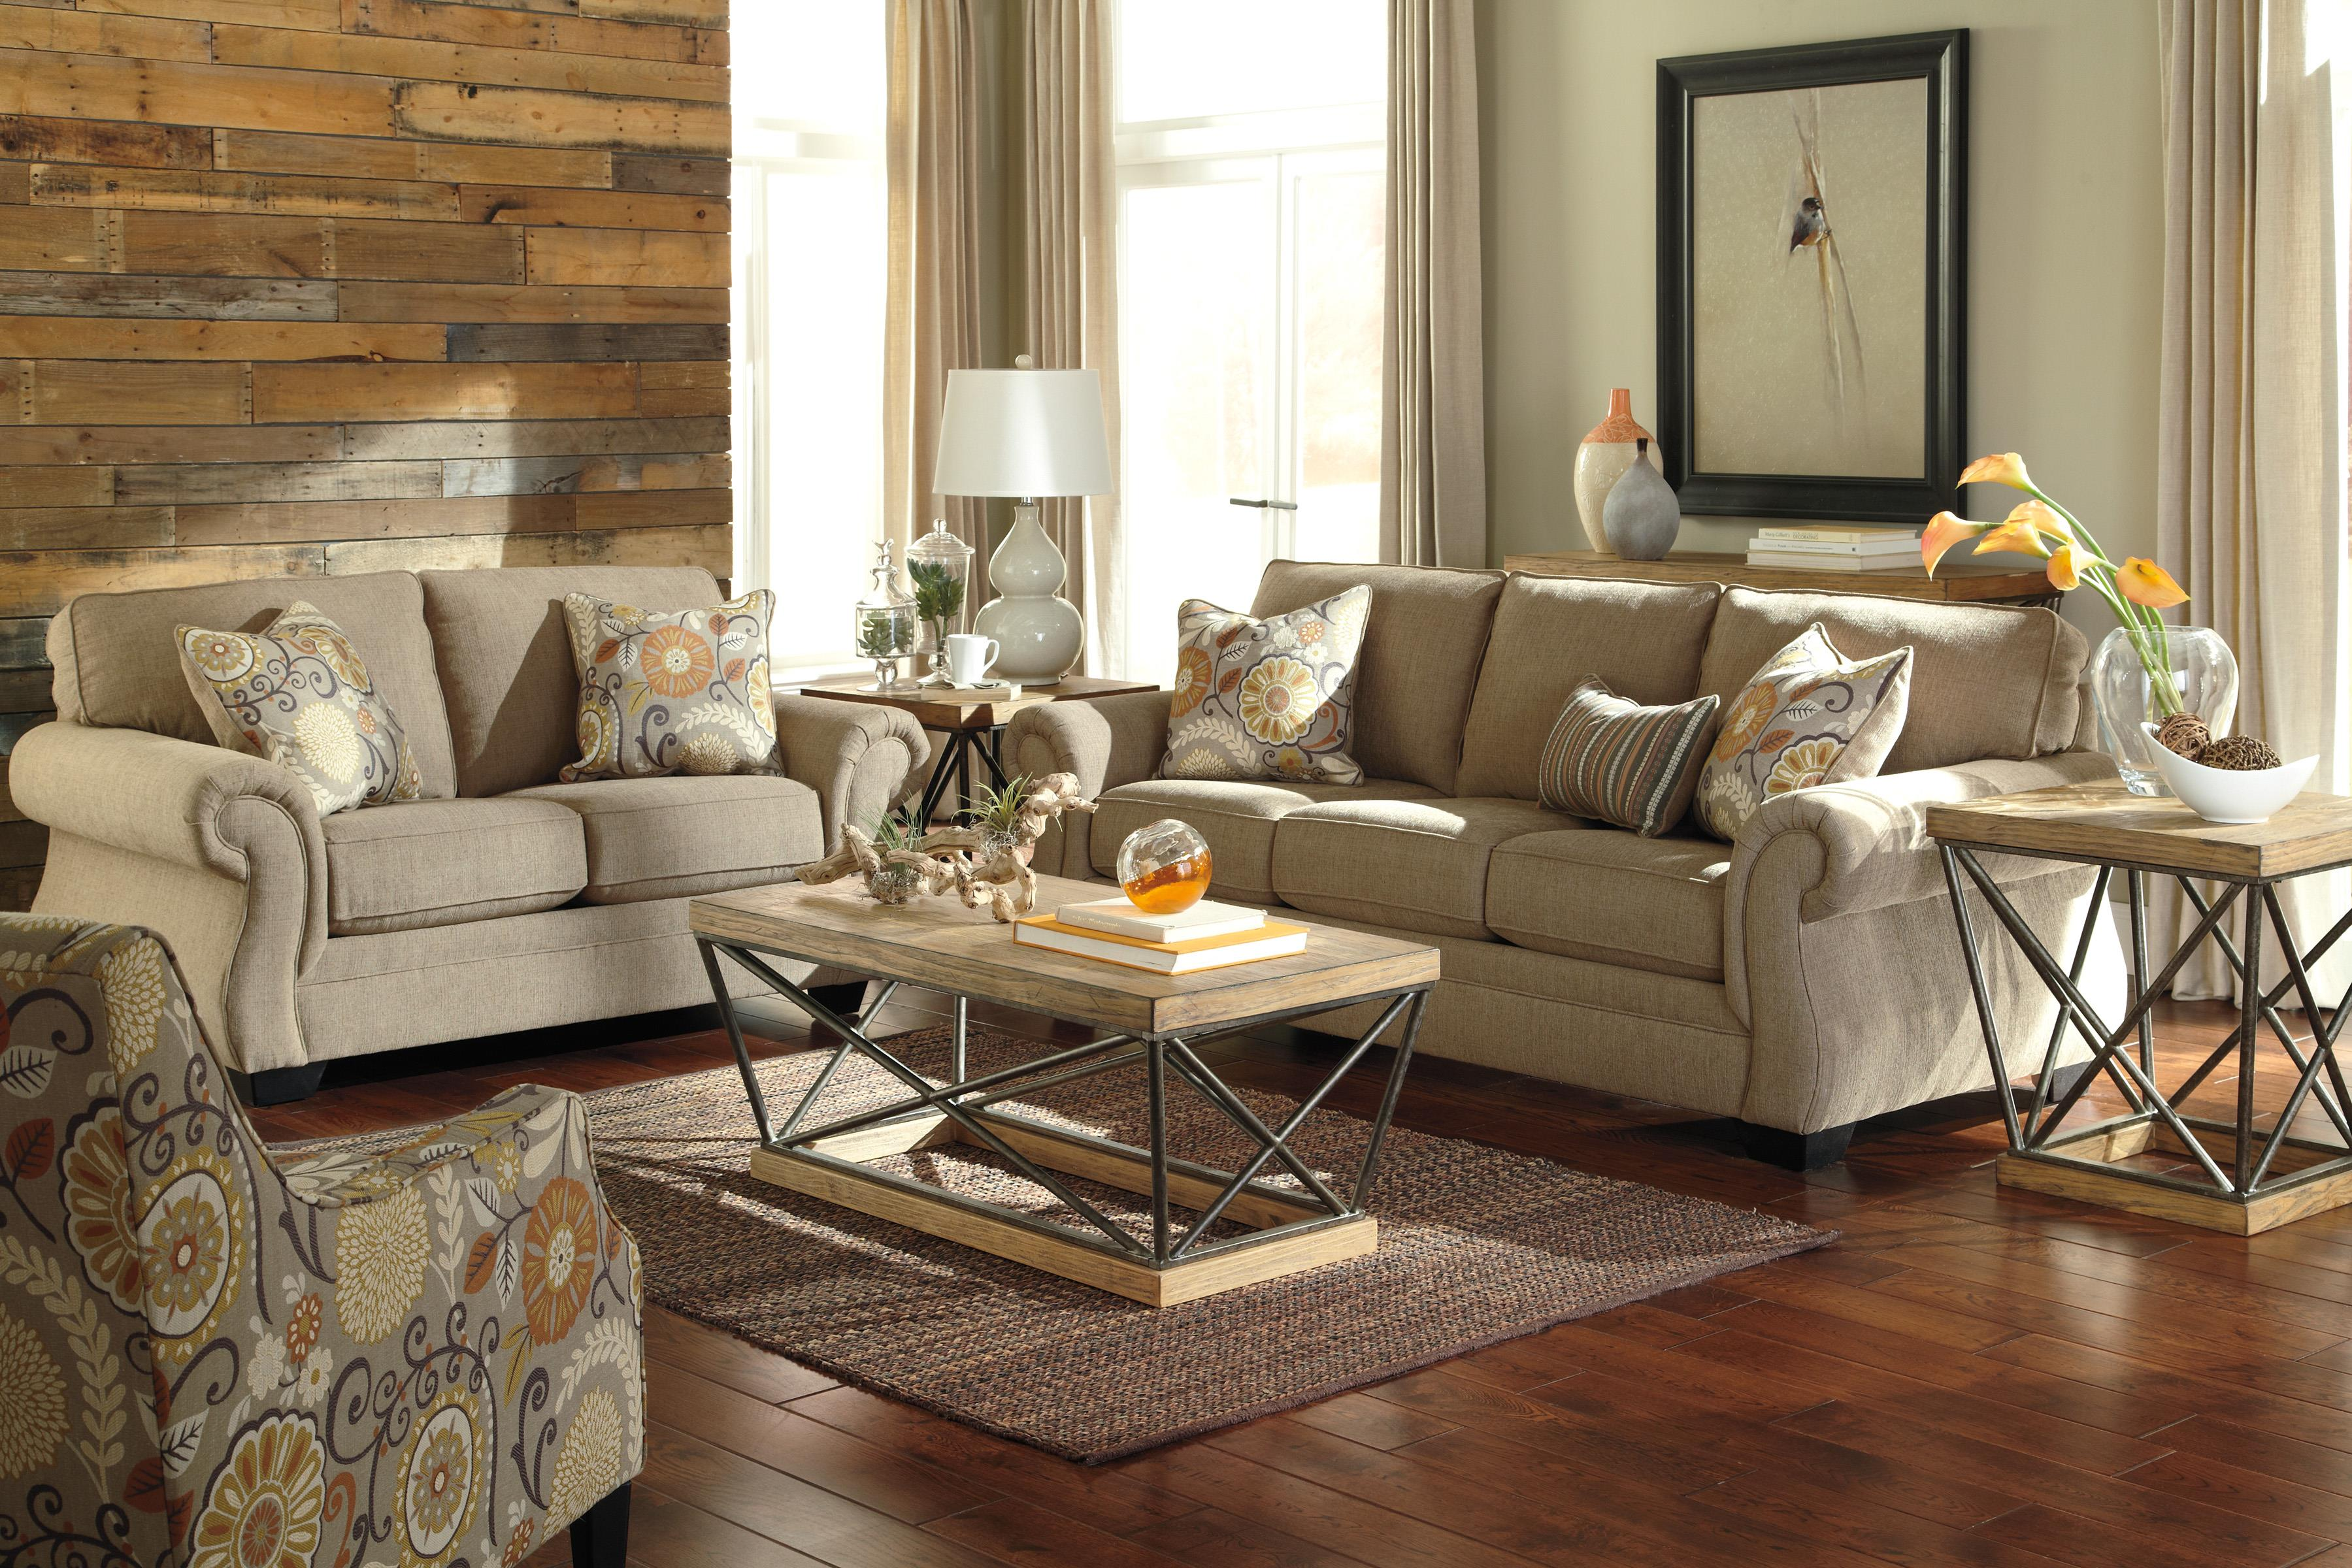 Benchcraft Tailya Stationary Living Room Group - Item Number: 47700 Living Room Group 2